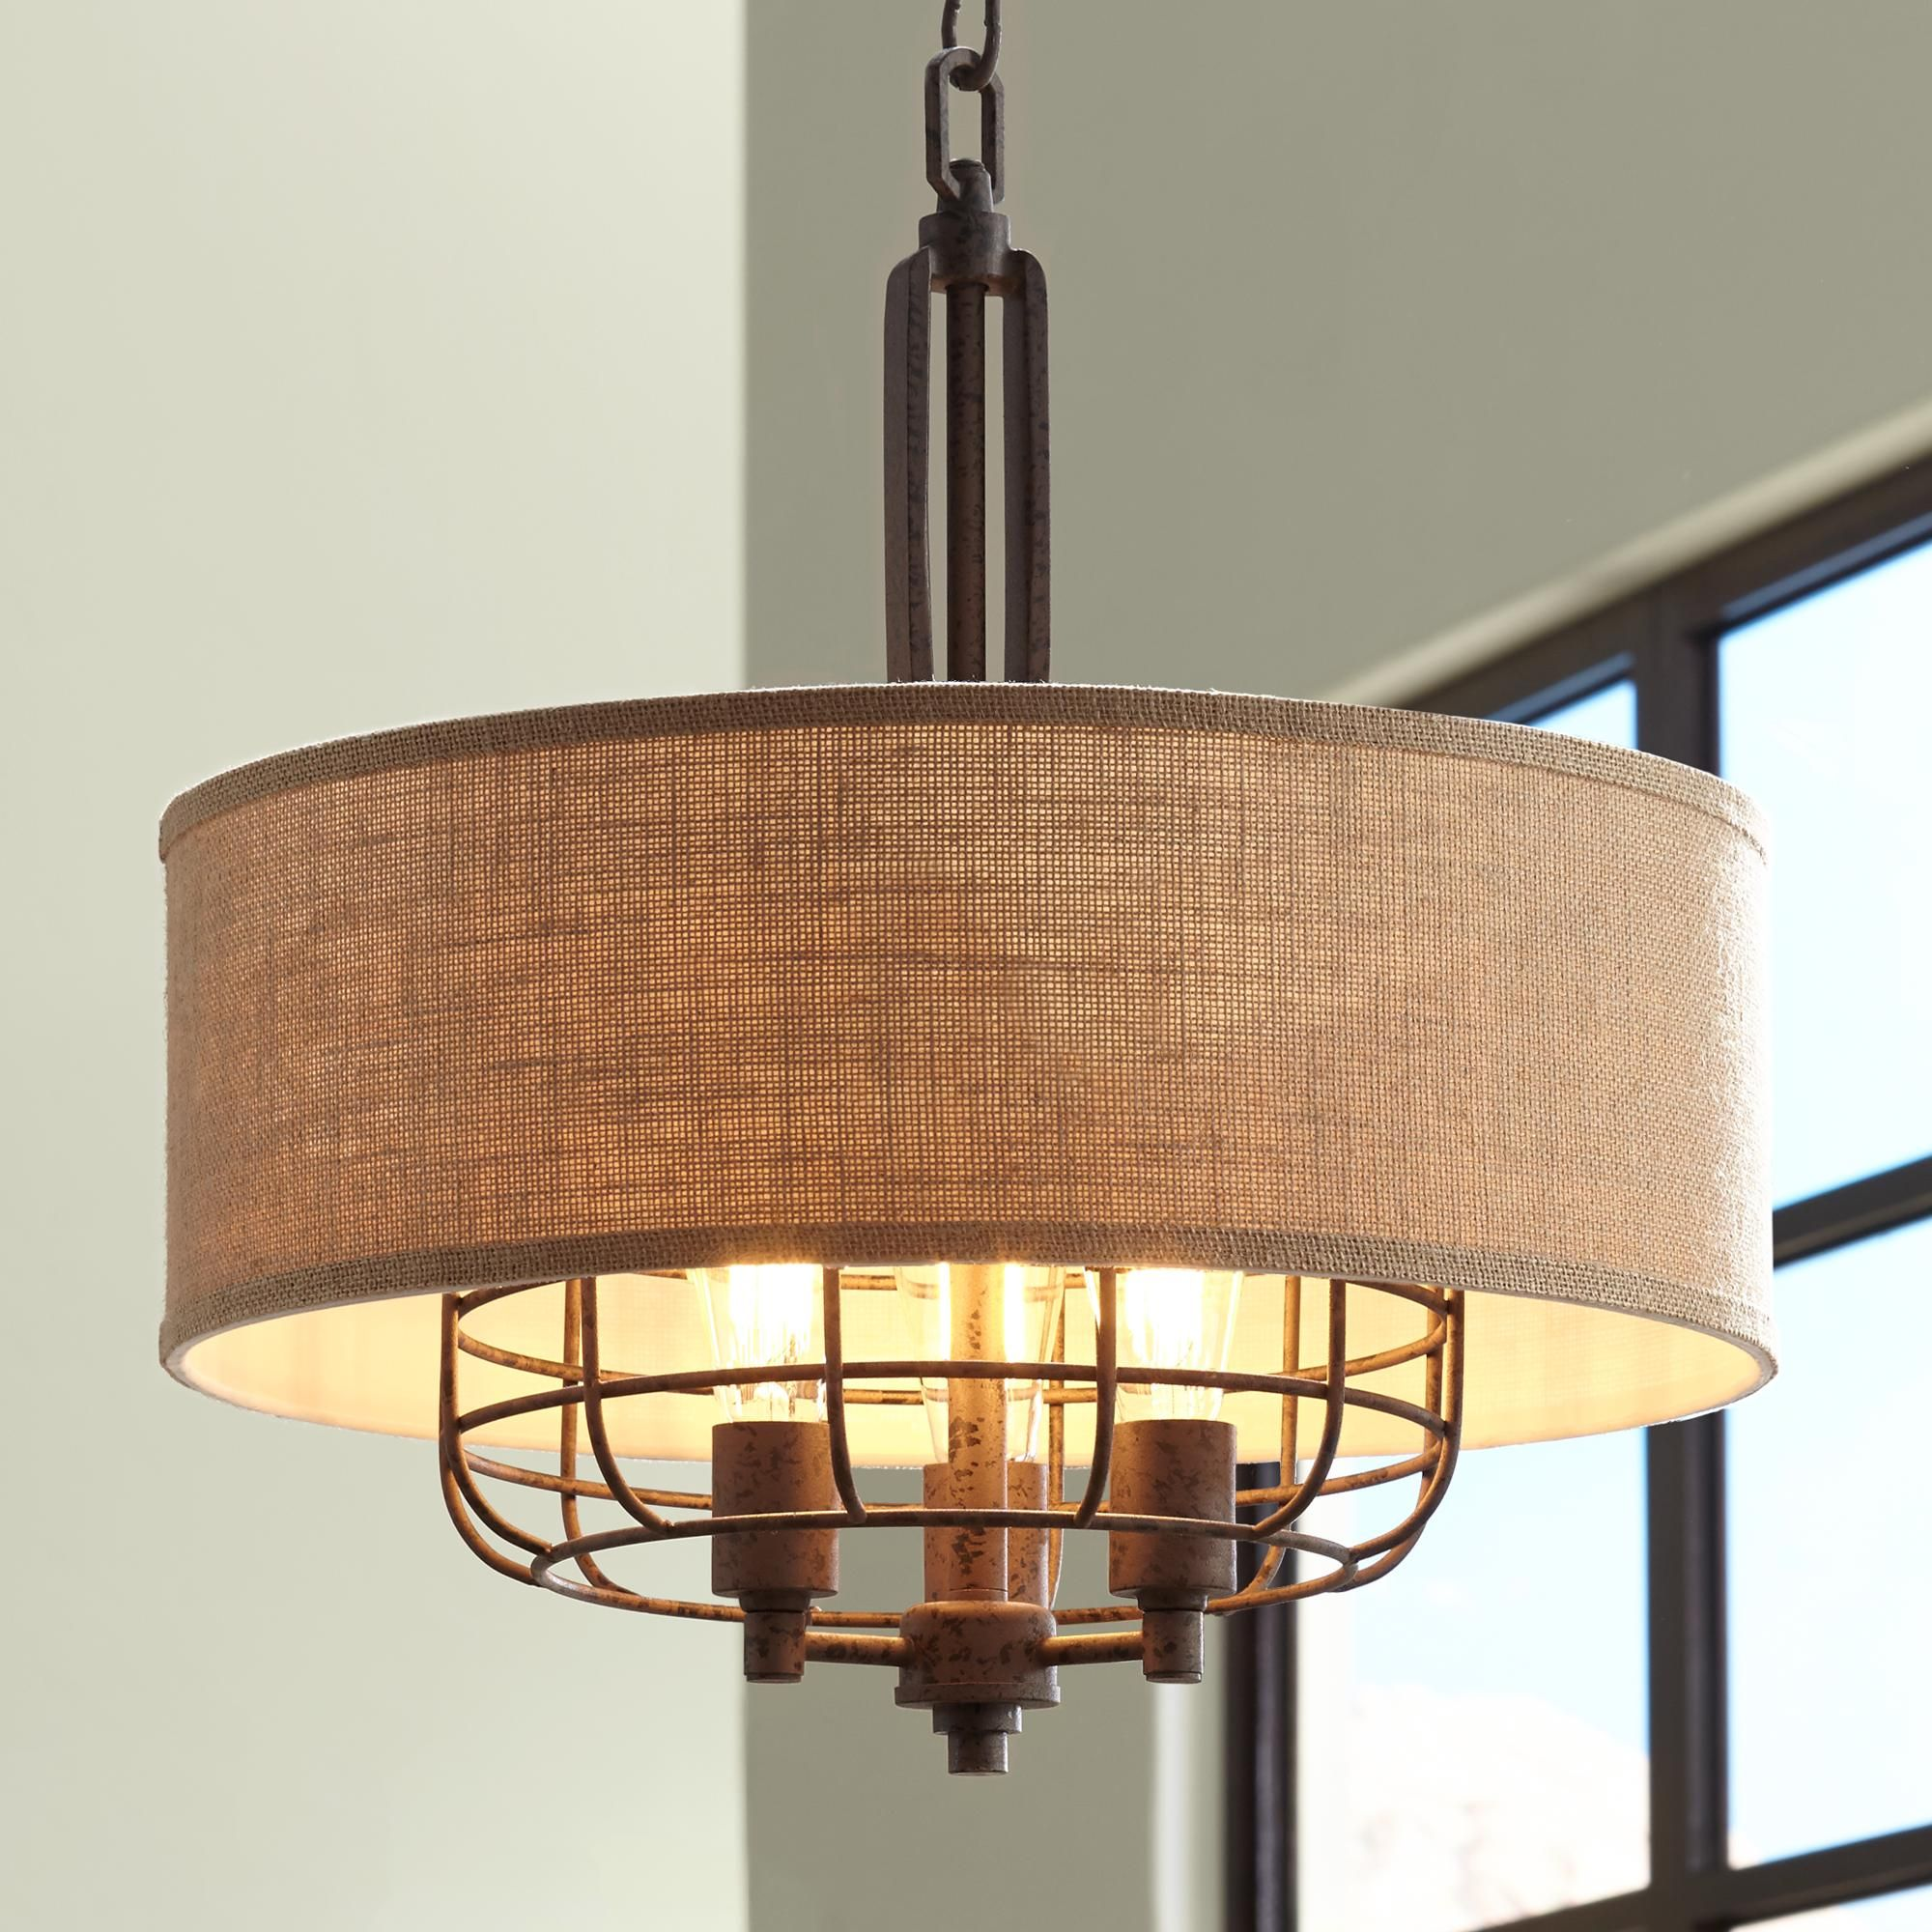 "Tremont 20"" Wide Rust Pendant Light by Franklin Iron Works"